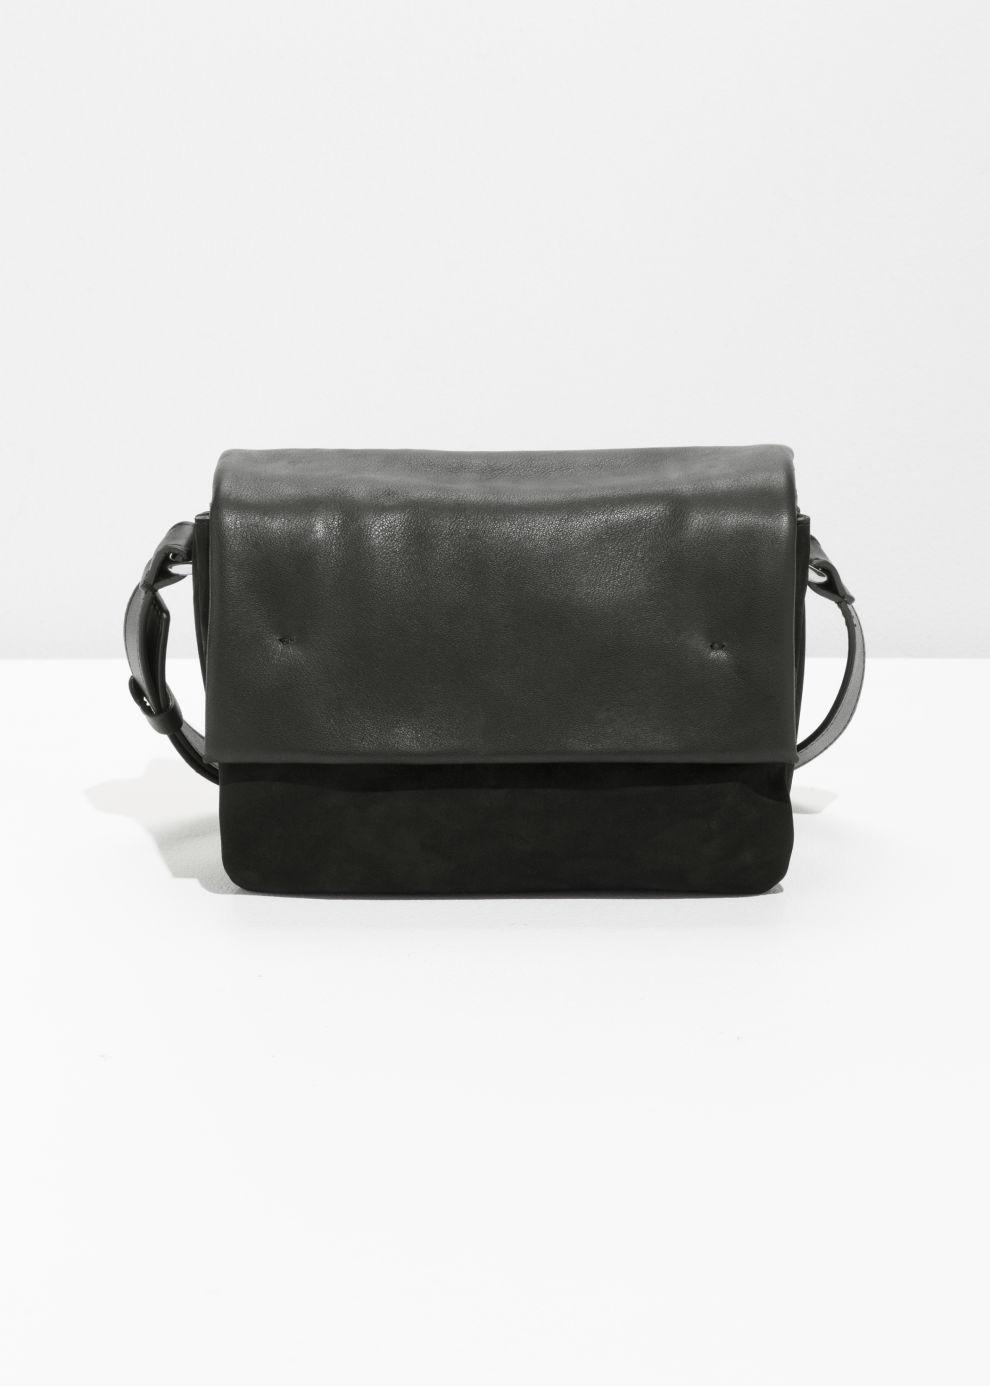 Other Stories Leather Crossbody Bag in Black - Lyst d98b6bc2cb3d3